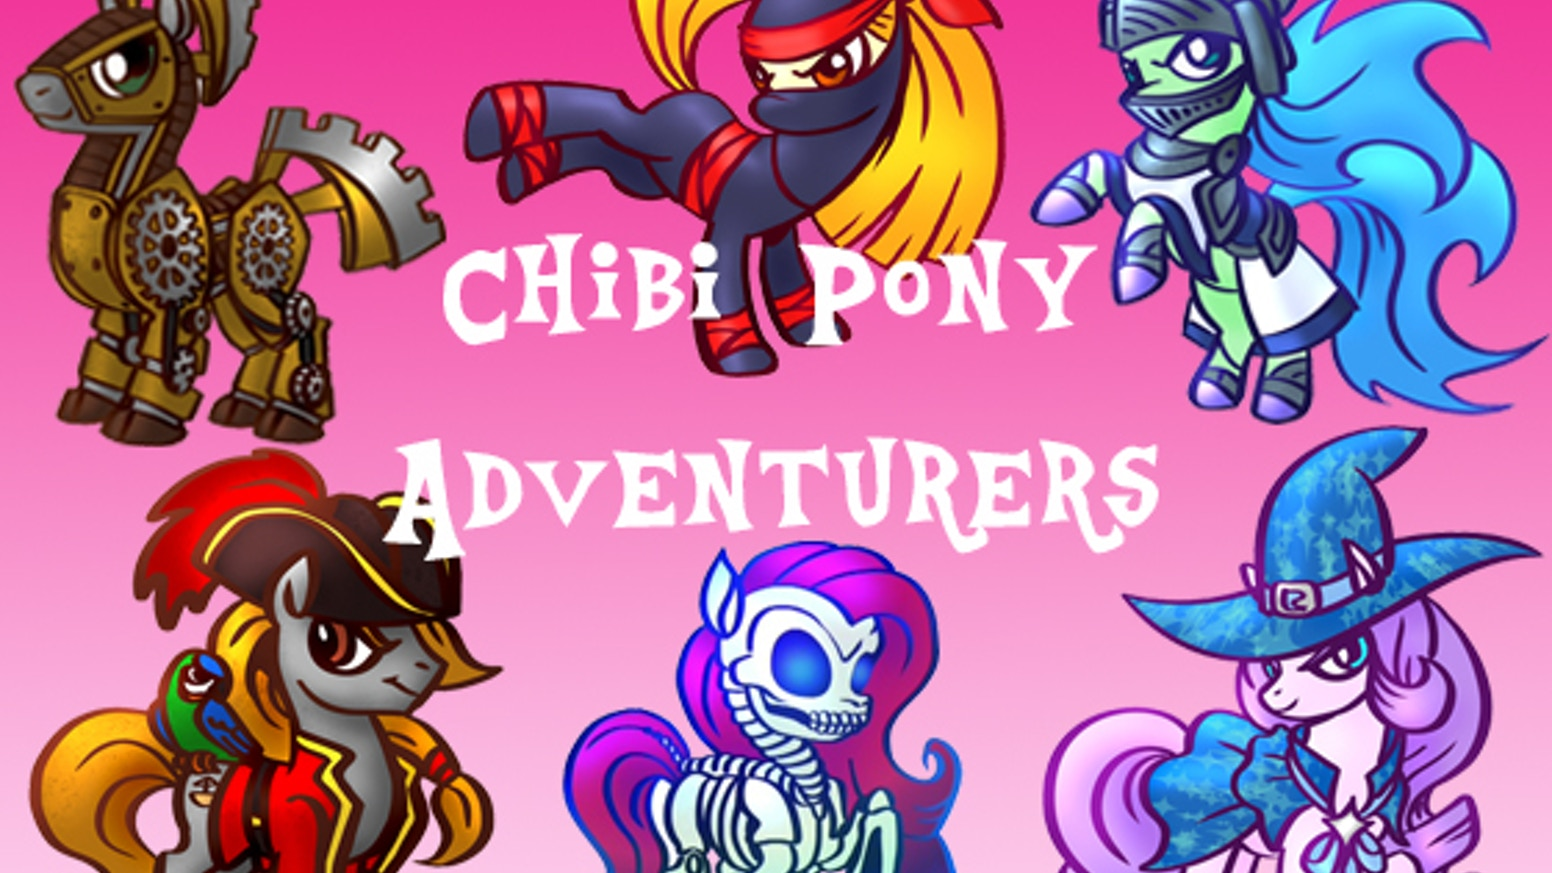 A miniatures line of pony fantasy adventurers and monsters in chibi anime style.